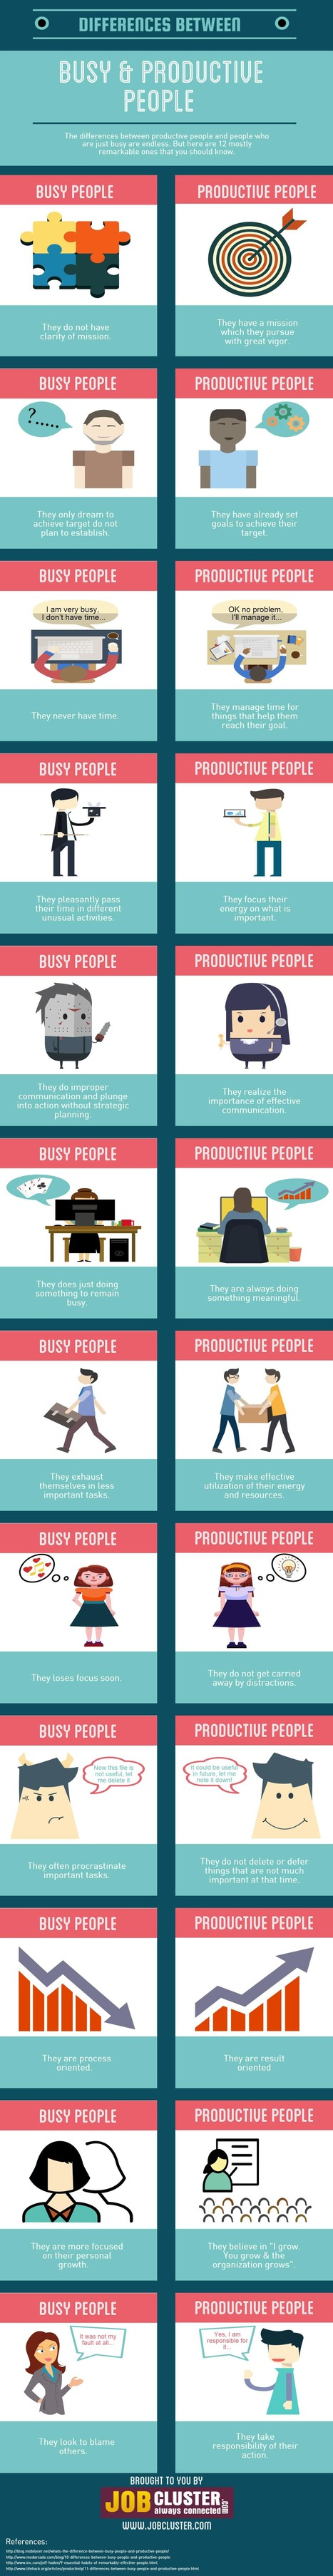 Difference Between Busy and Productive People | learning to live | Scoop.it